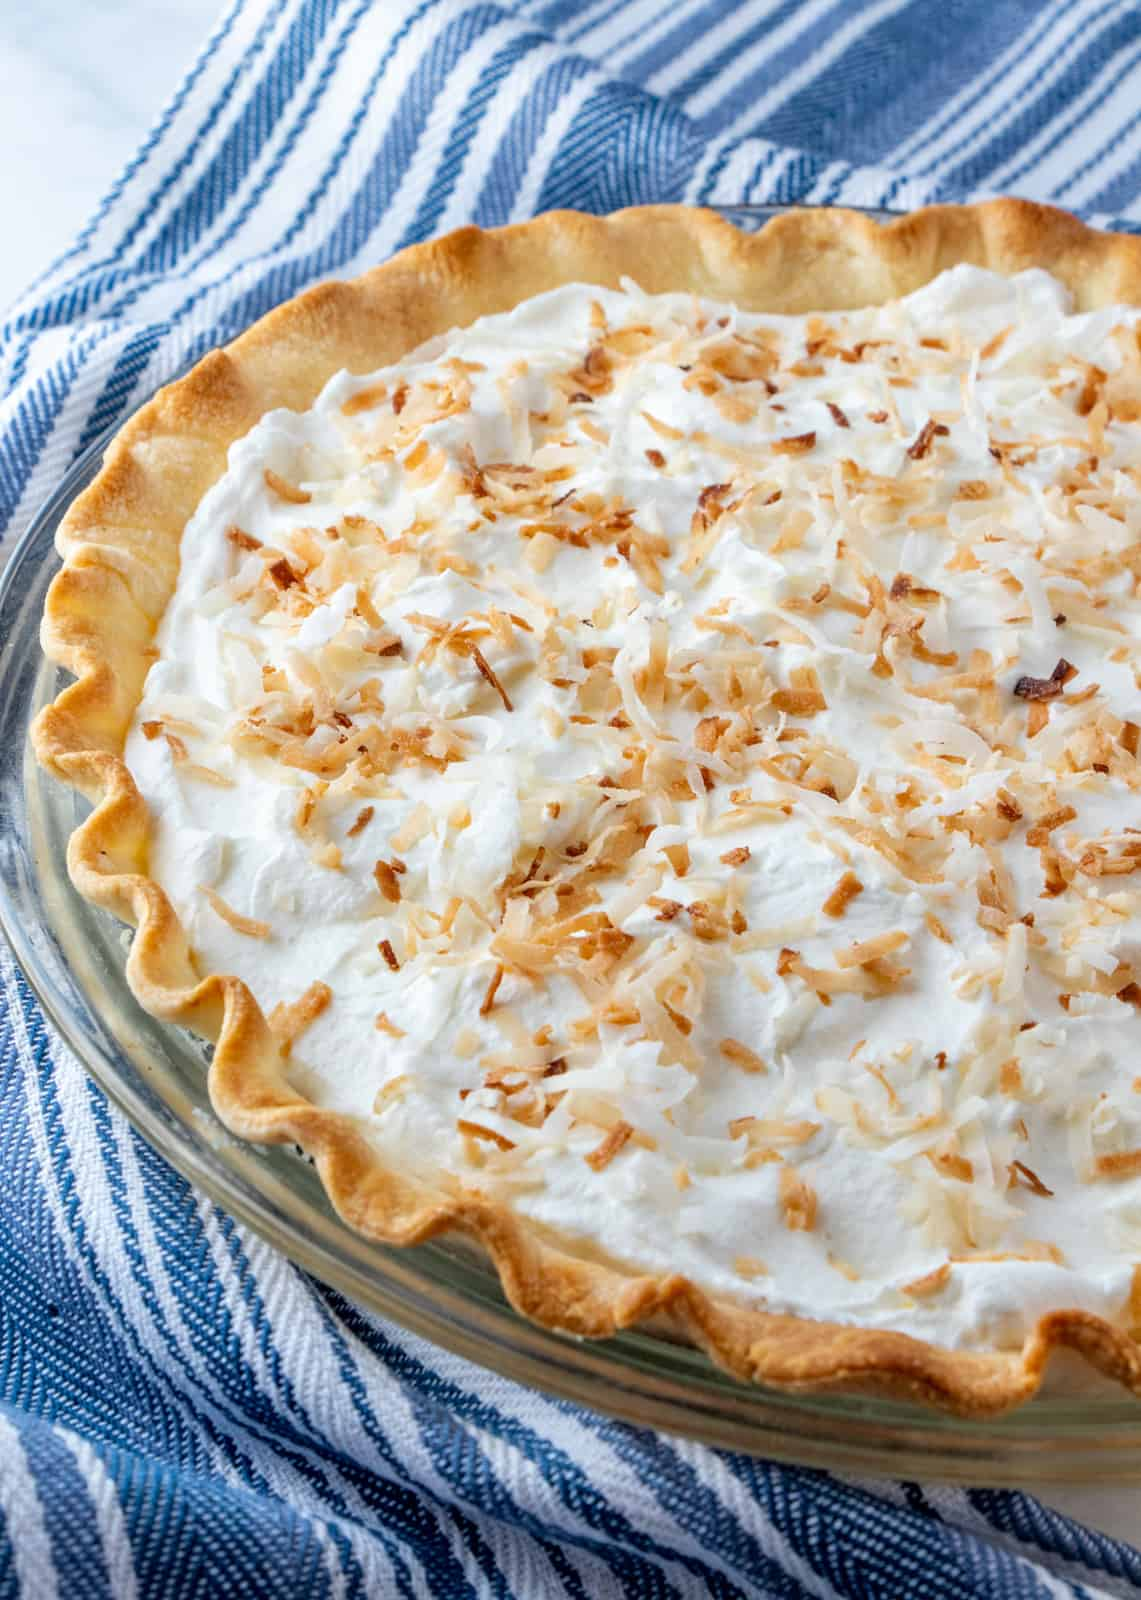 Finished pie uncut in pie pate topped with whipped cream and toasted coconut